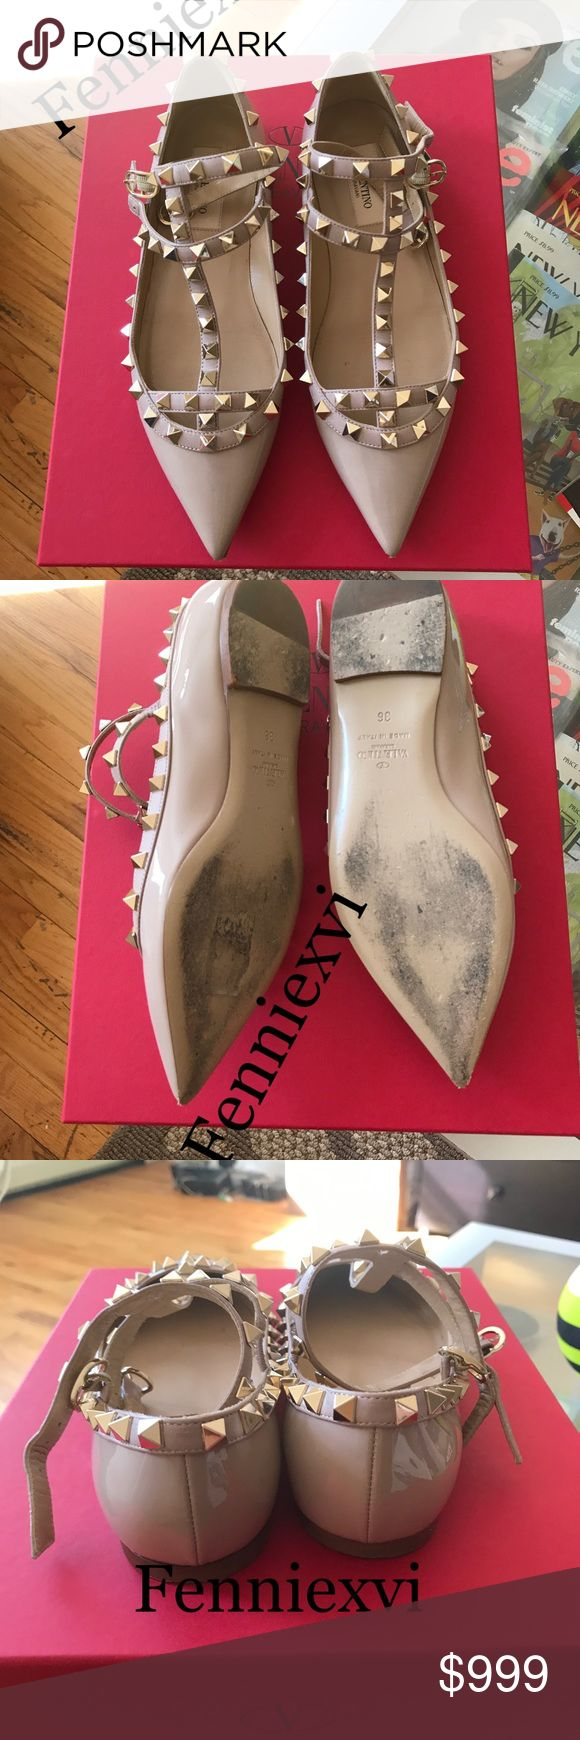 Valentino Rockstud Flats Nude Patent Size 6 100% authentic, worn once! NO scuffs or marks on the surface of the leather. 9/10. Highly sought after classic color, sold out! Comes with original box and dustbag. NO TRADES! vixfennie@gmail for offers, questions and pictures. Look at my previous sales and comments from buyers. NO SCAMMERS🙅 Valentino Shoes Flats & Loafers